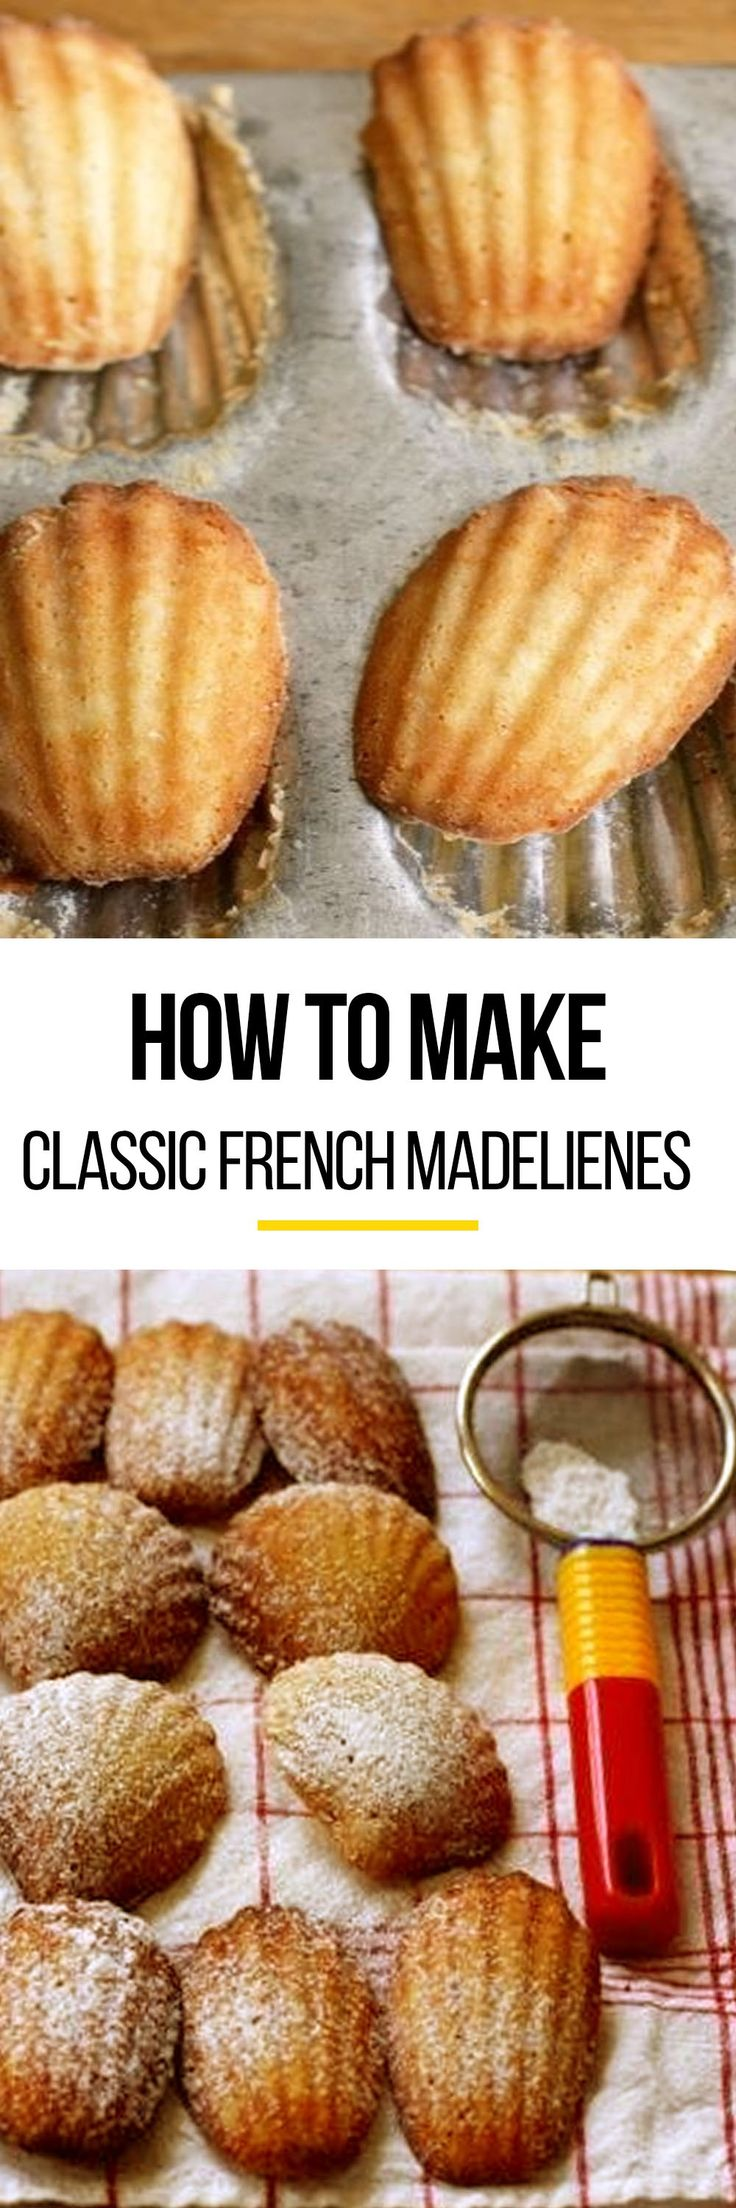 This recipe for the classic french madeleines is for the more experienced cook. Madeleines are delicious when cooled down from a nice cozy oven. To make these sweet treats, you'll need unsalted butter, white sugar, all-purpose flour and lemon zest.